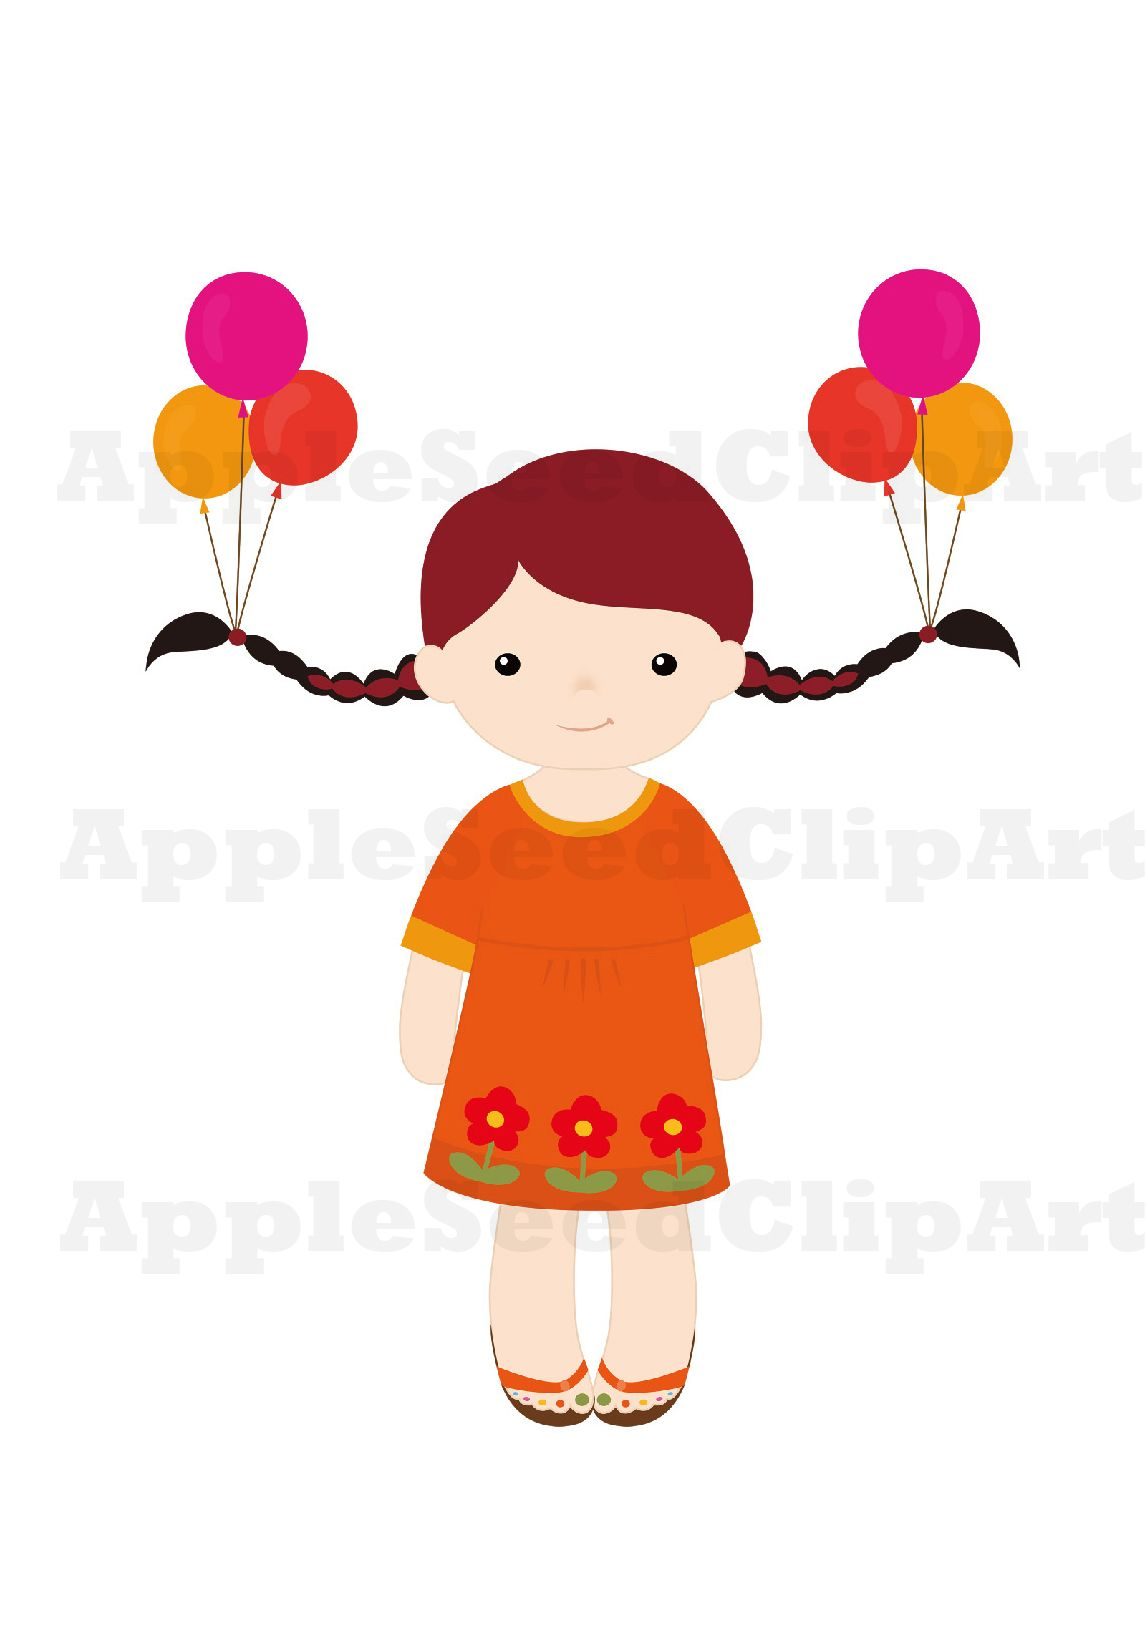 Crazy Hair Day Clip Art Crazy Hair 1258676 Png Images Pngio